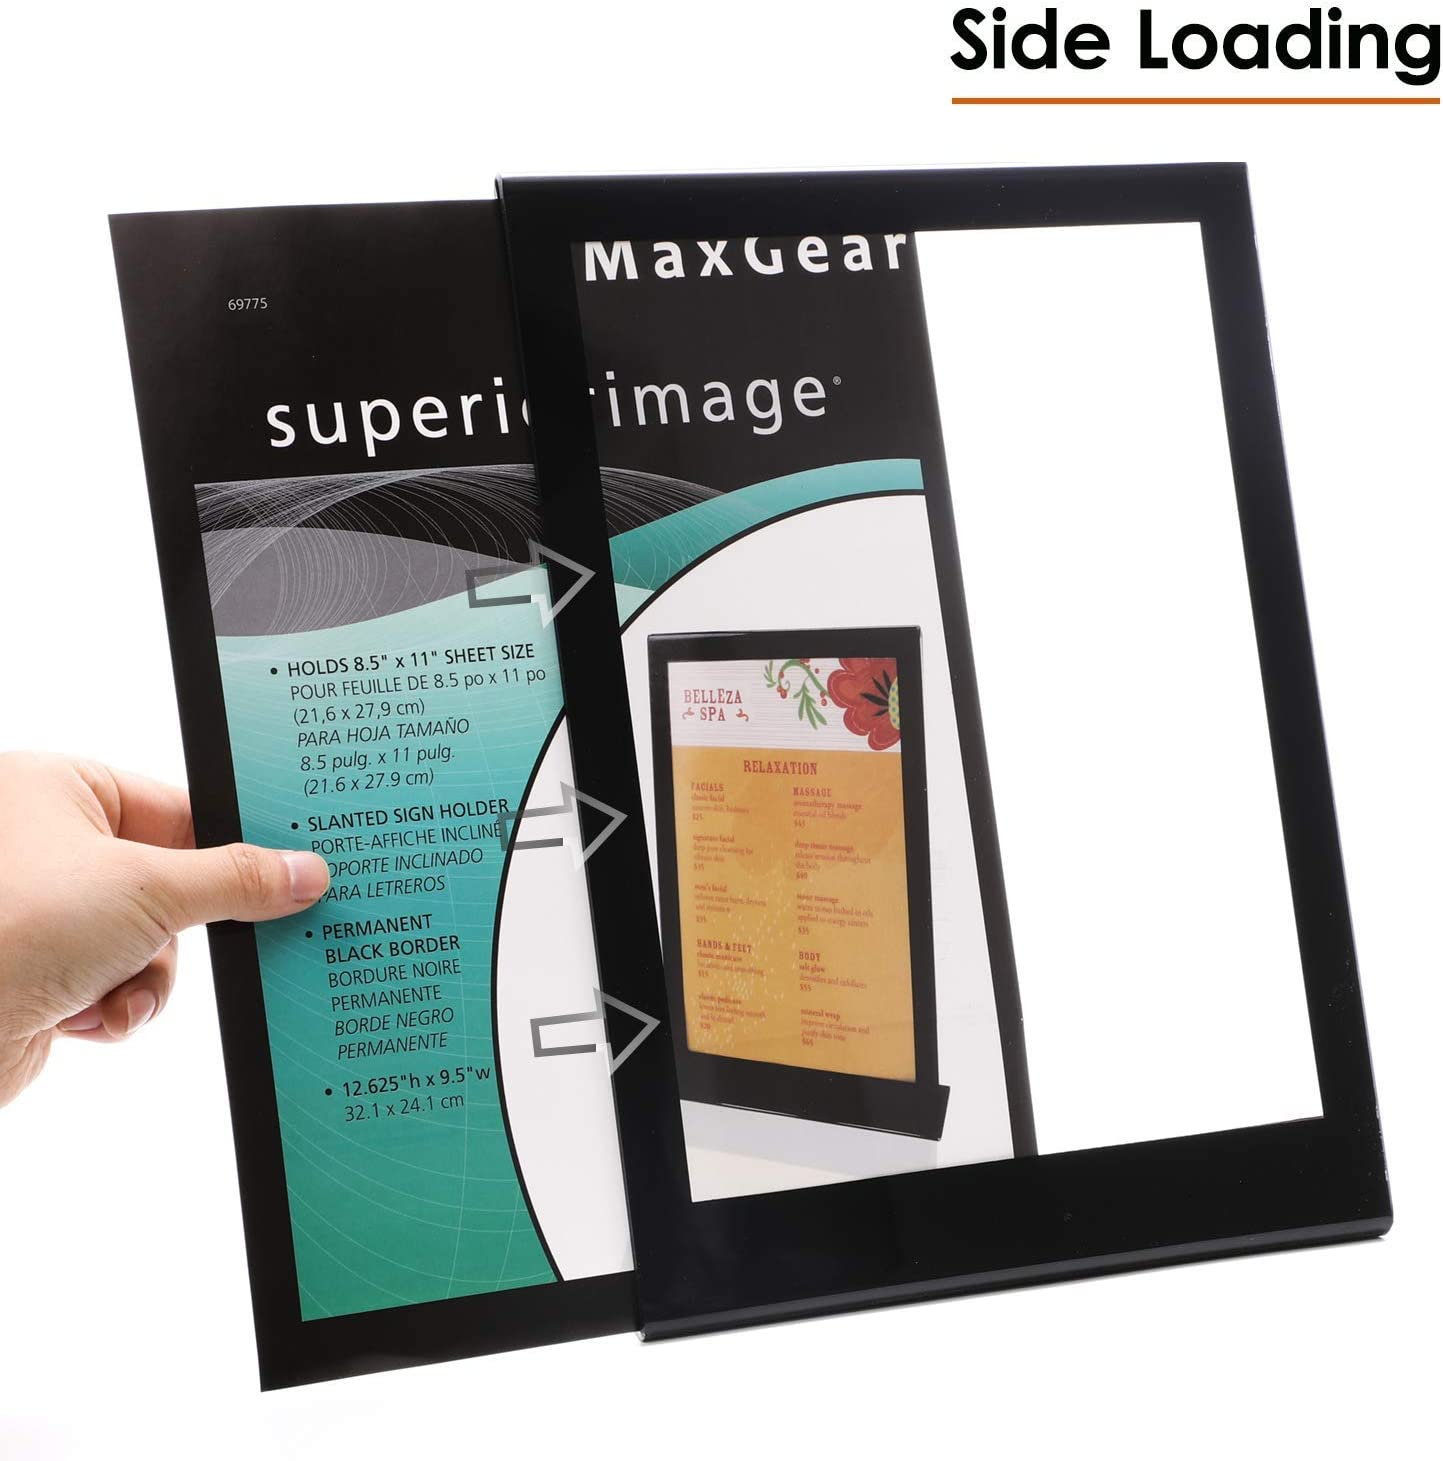 Acrylic Sign Holders Table Top Sign Holder Restaurant Home Clear Acrylic Stand Holder 8.5 X 11 inches Store MaxGear Sign Holder Display Stand Ad Frame for Office